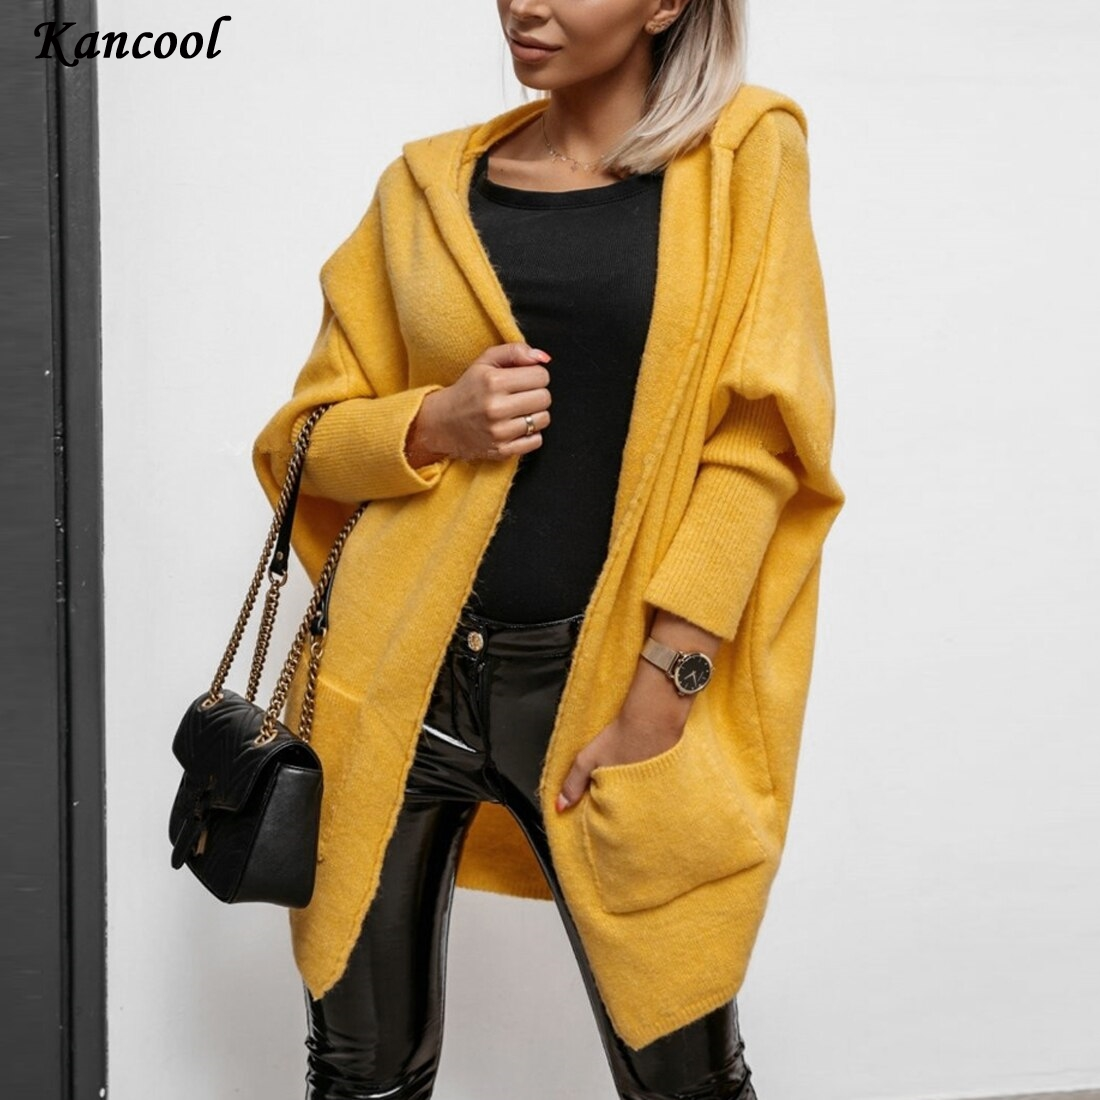 KANCOOL 2020 Solid Knitted Long Cardigan Women Autumn Hooded Batwing Sleeve Women